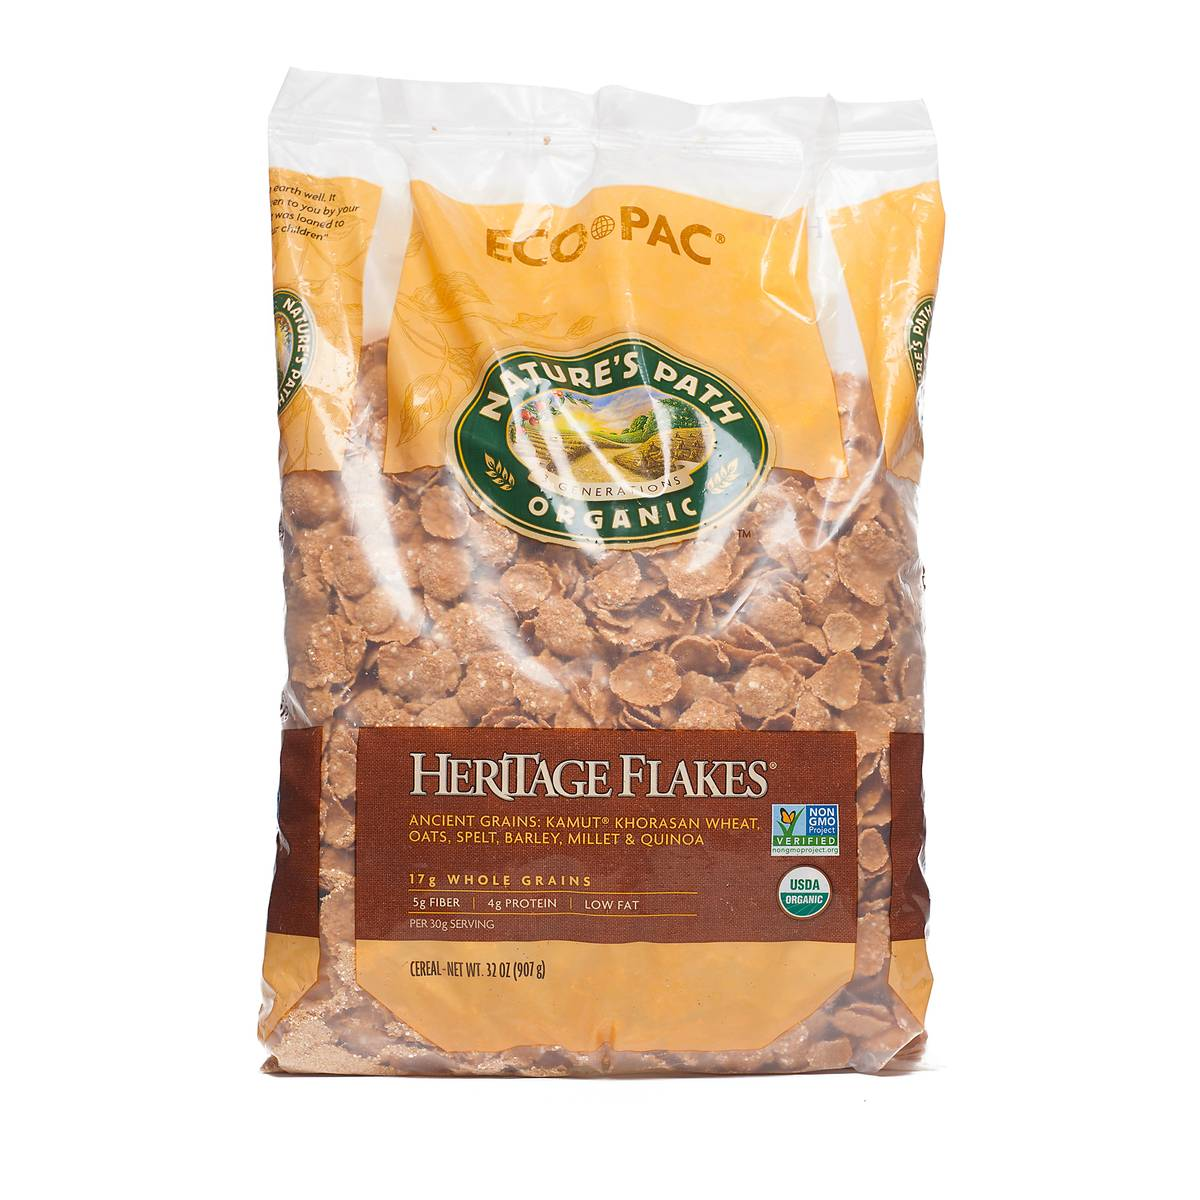 Organic Heritage Flakes Cereal By Natures Path Thrive Market Quaker Instant Oatmeal Jar 1 Carton 12 Pcs P